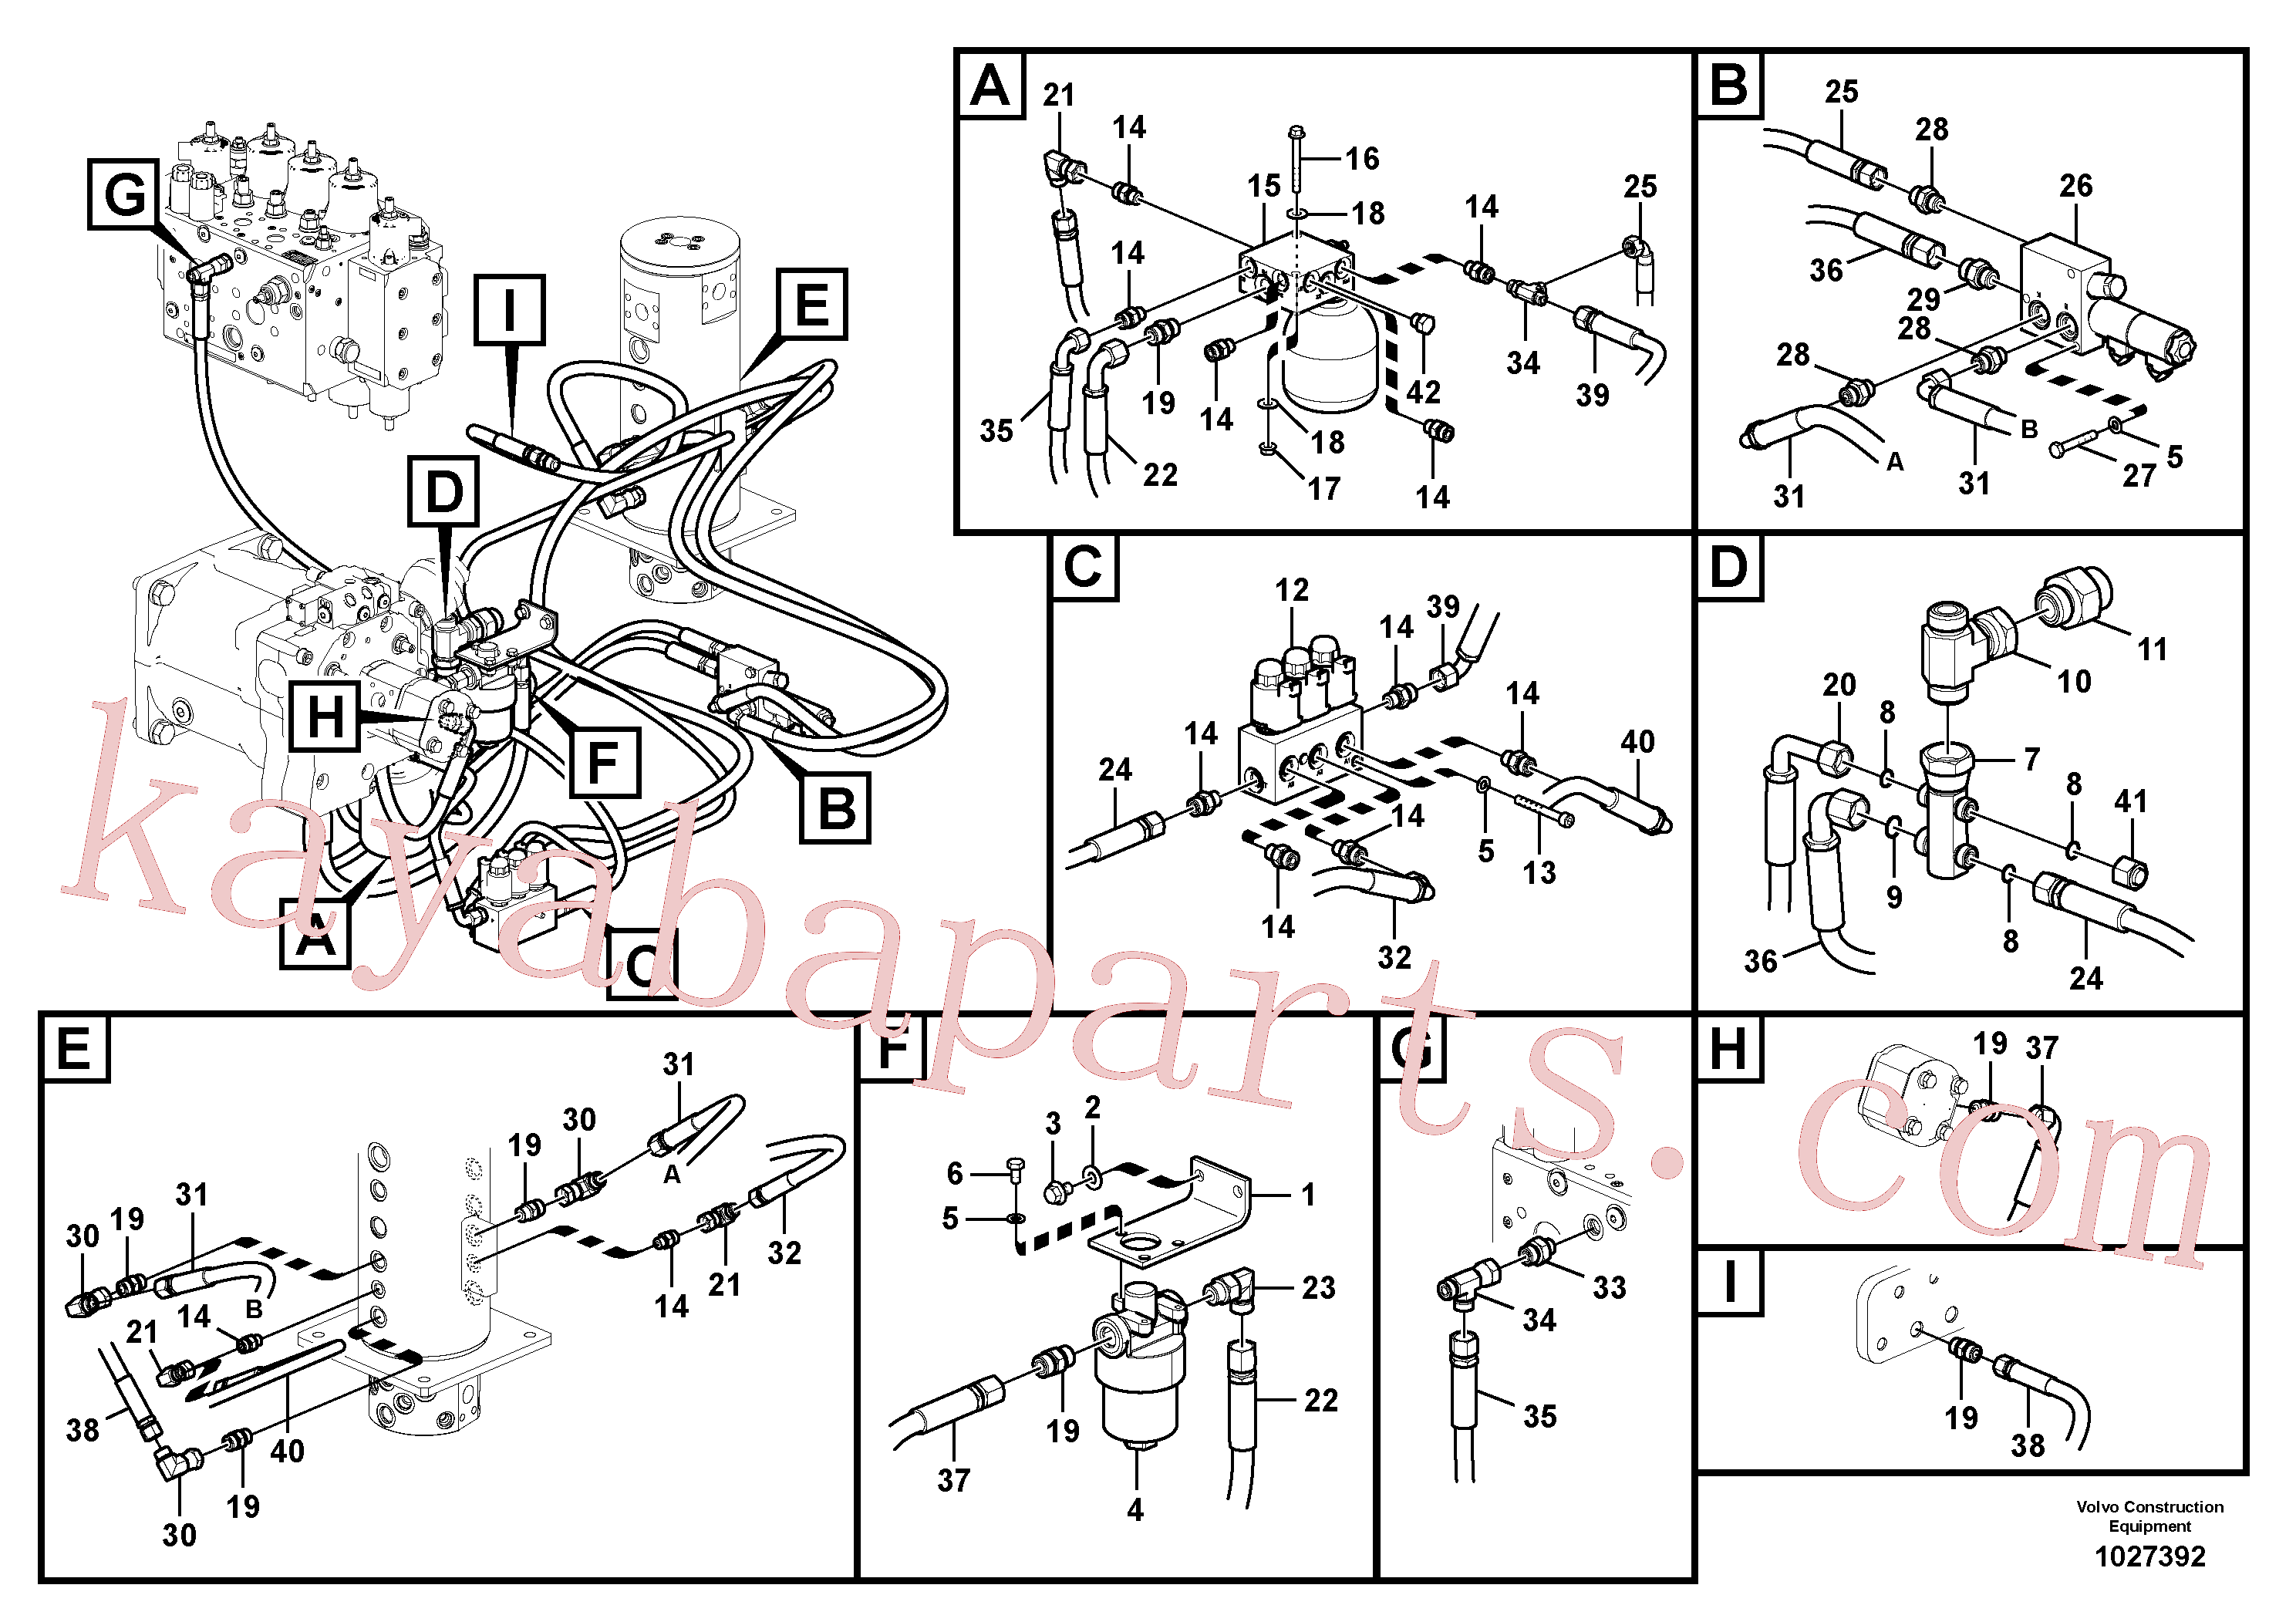 VOE11883022 for Volvo Servo system, control valve piping.(1027392 assembly)